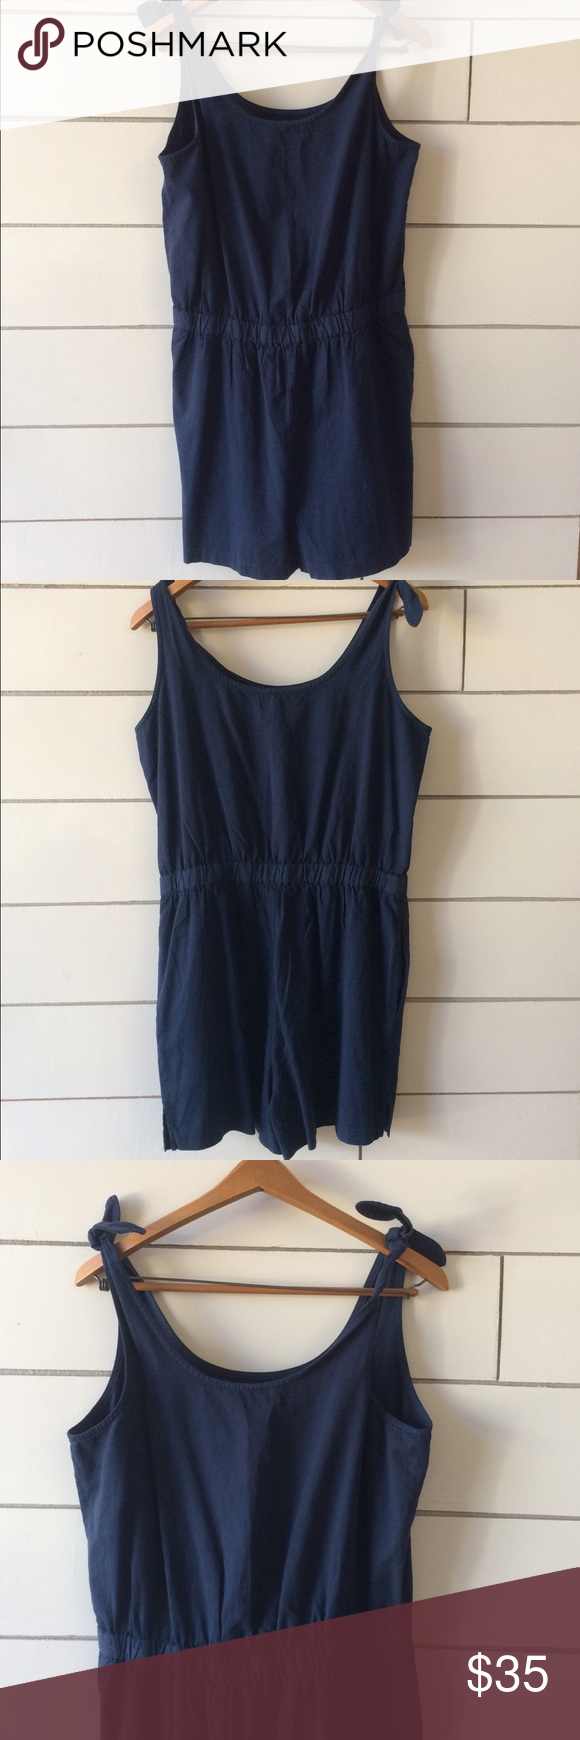 Madewell Tie Strap Romper New with tags, never been worn. Size M. Comes from a smoke free home. Thanks! Madewell Other